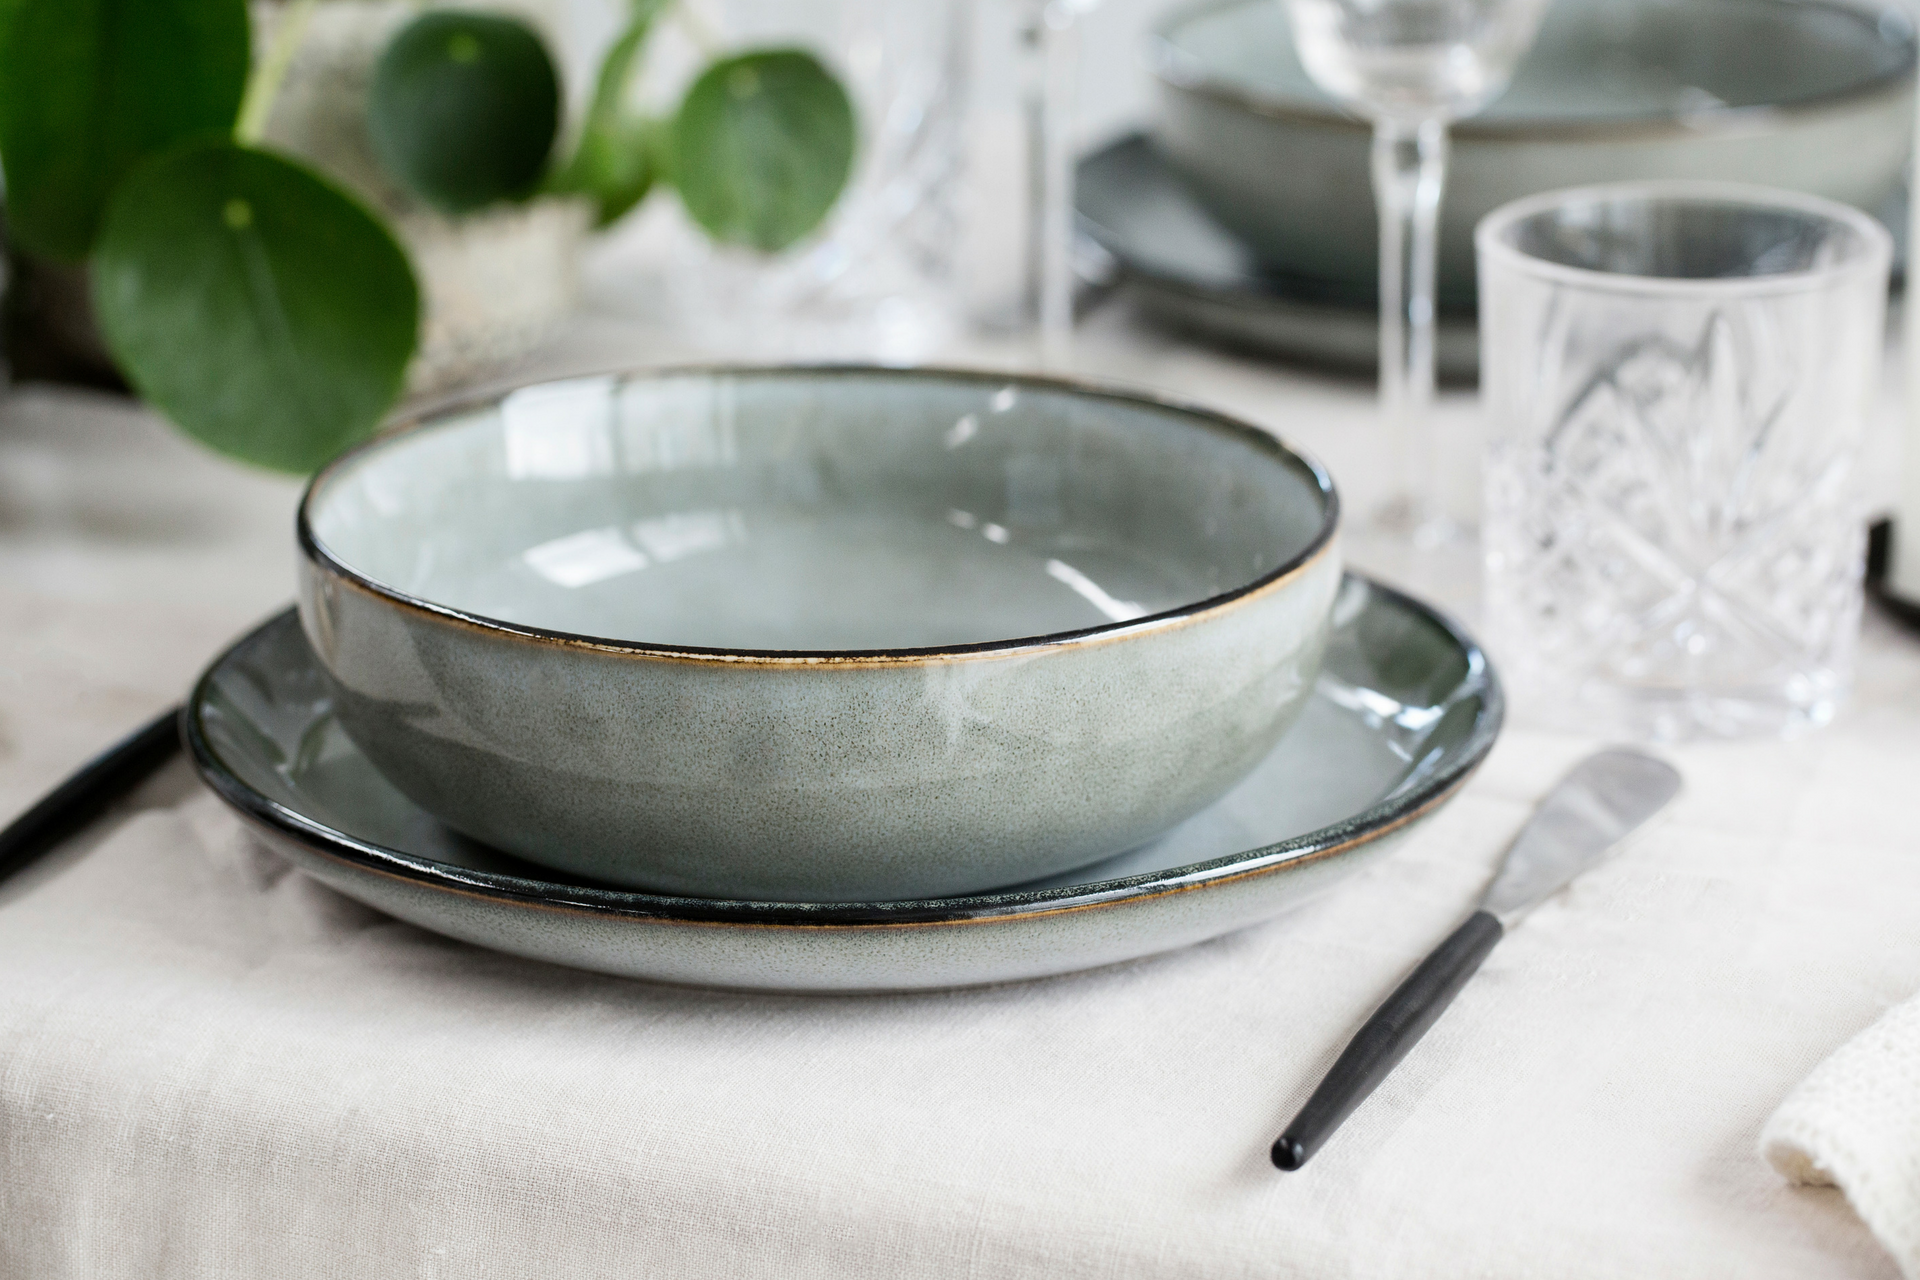 Table setting with grey bowl, plate and crystal glass